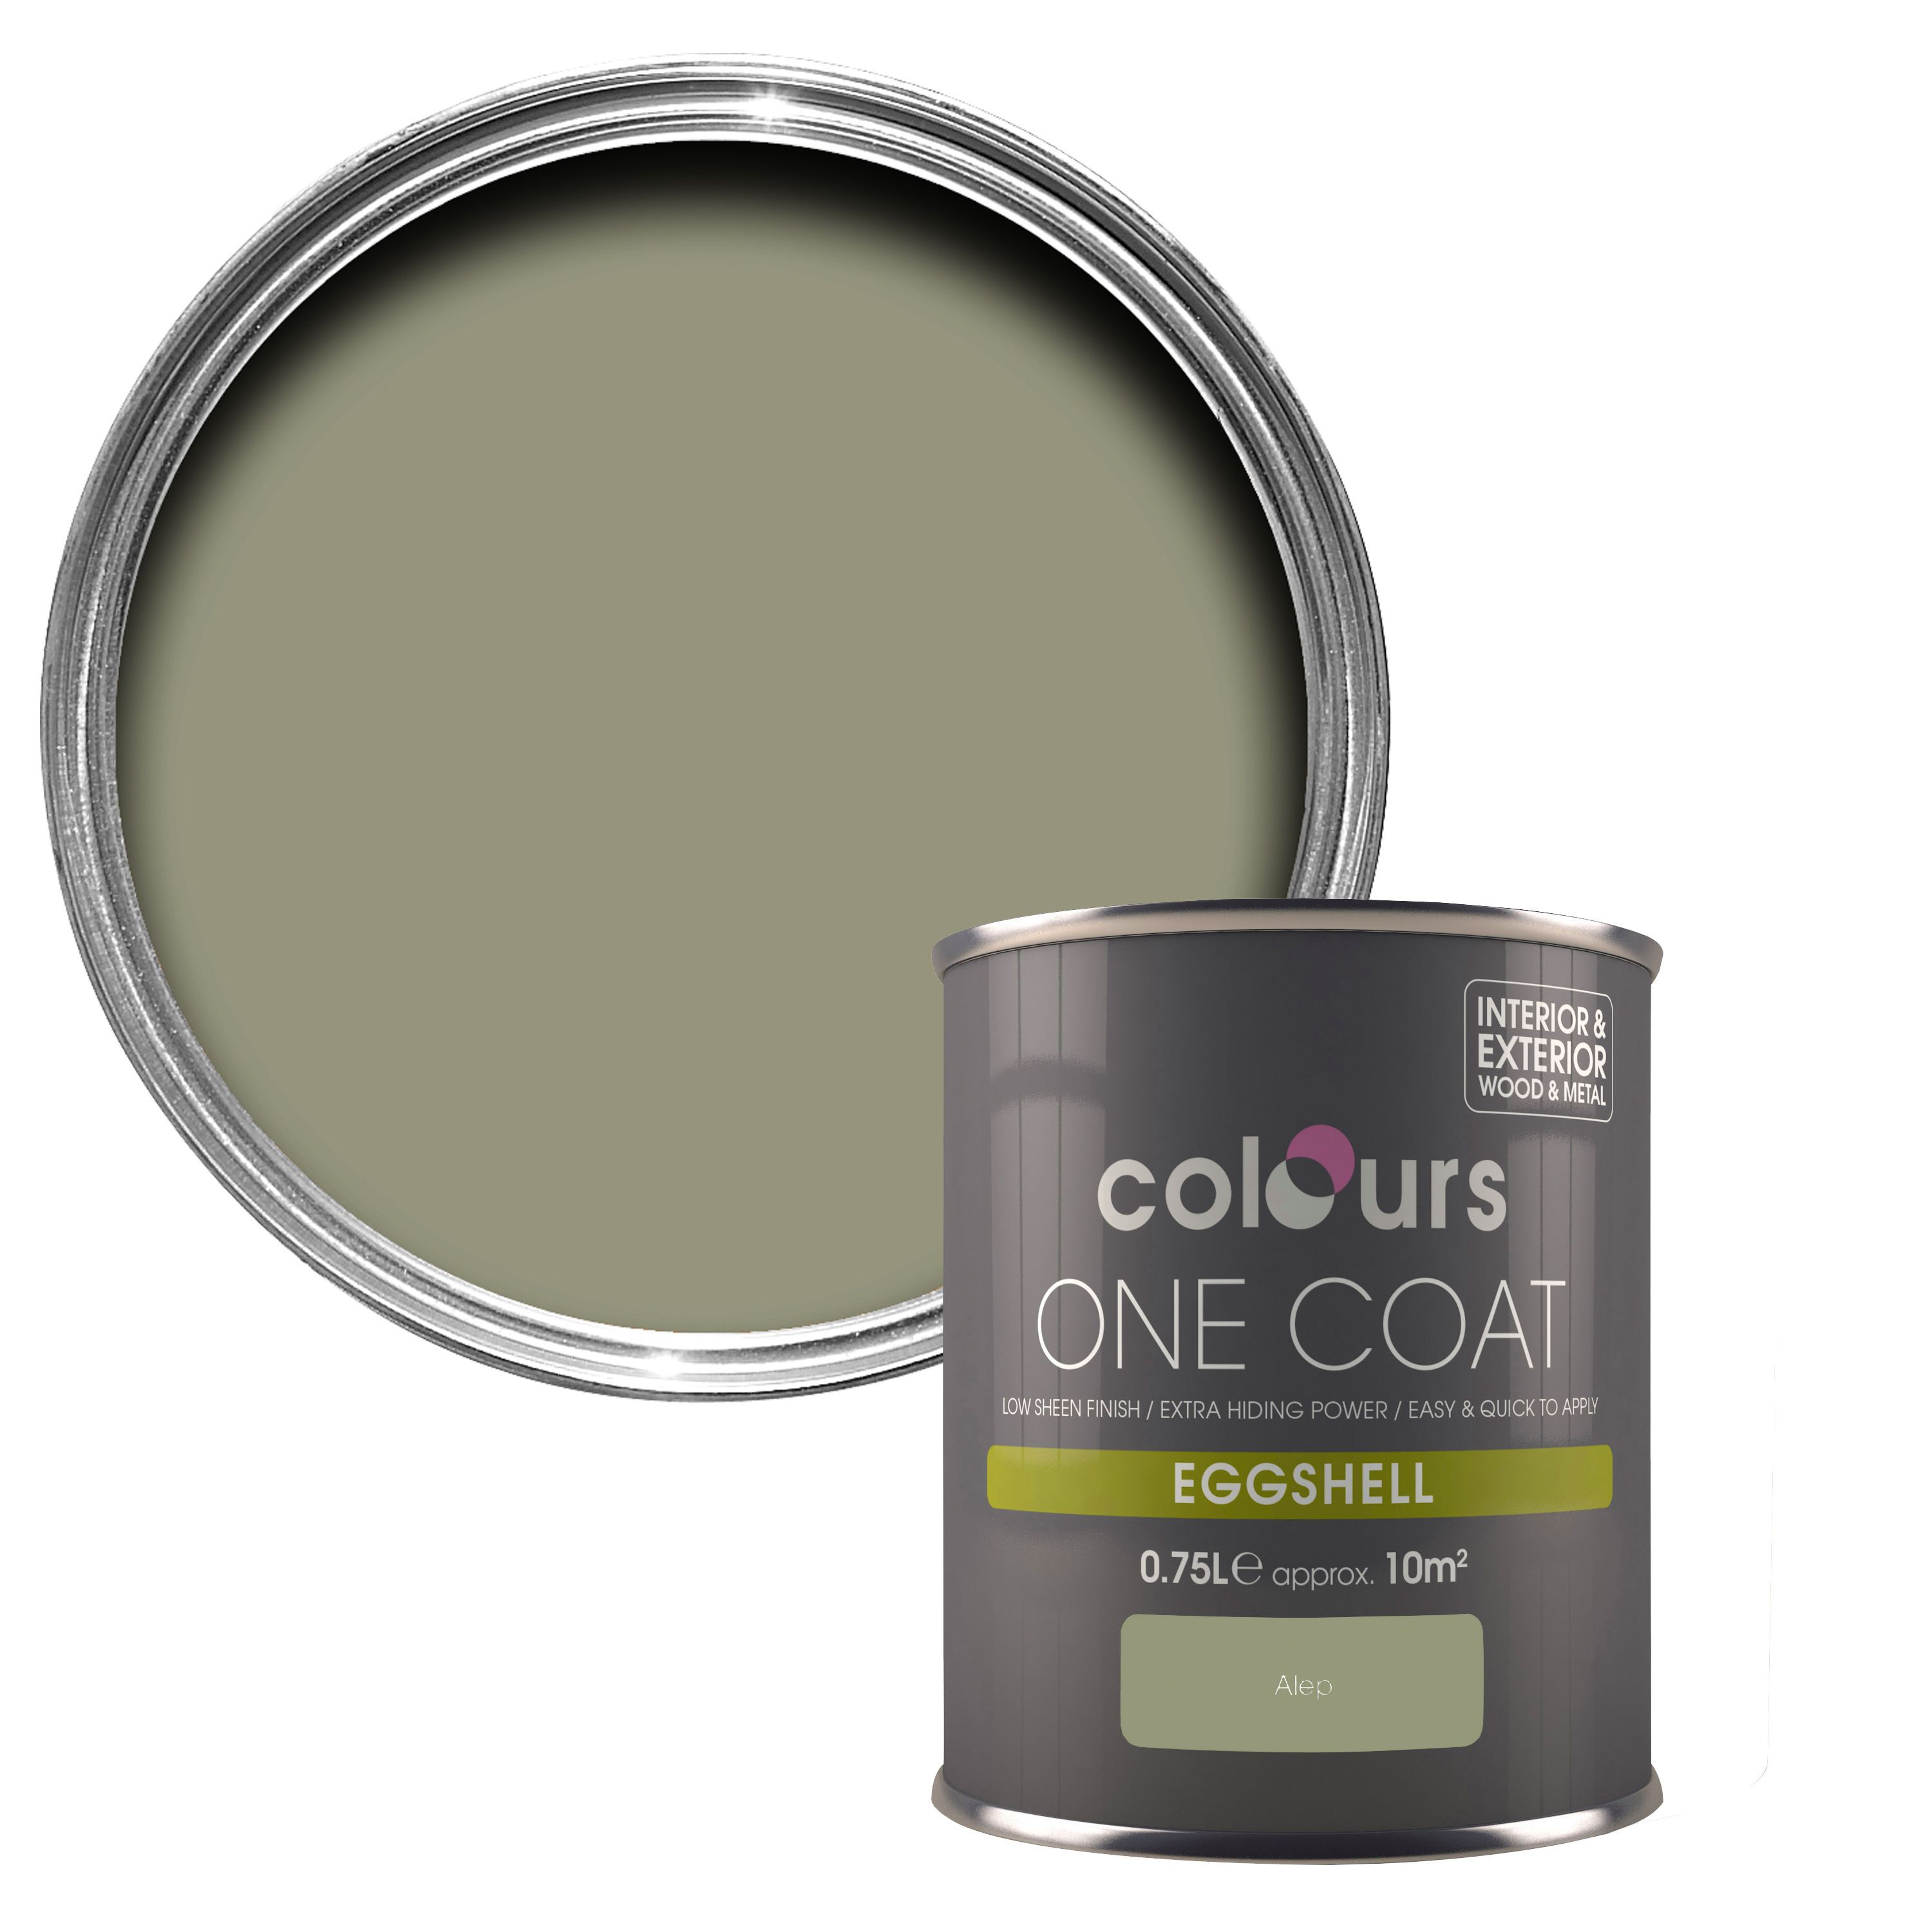 Colours One Coat Alep Eggshell Wood Metal Paint 750 Ml Departments Diy At B Q